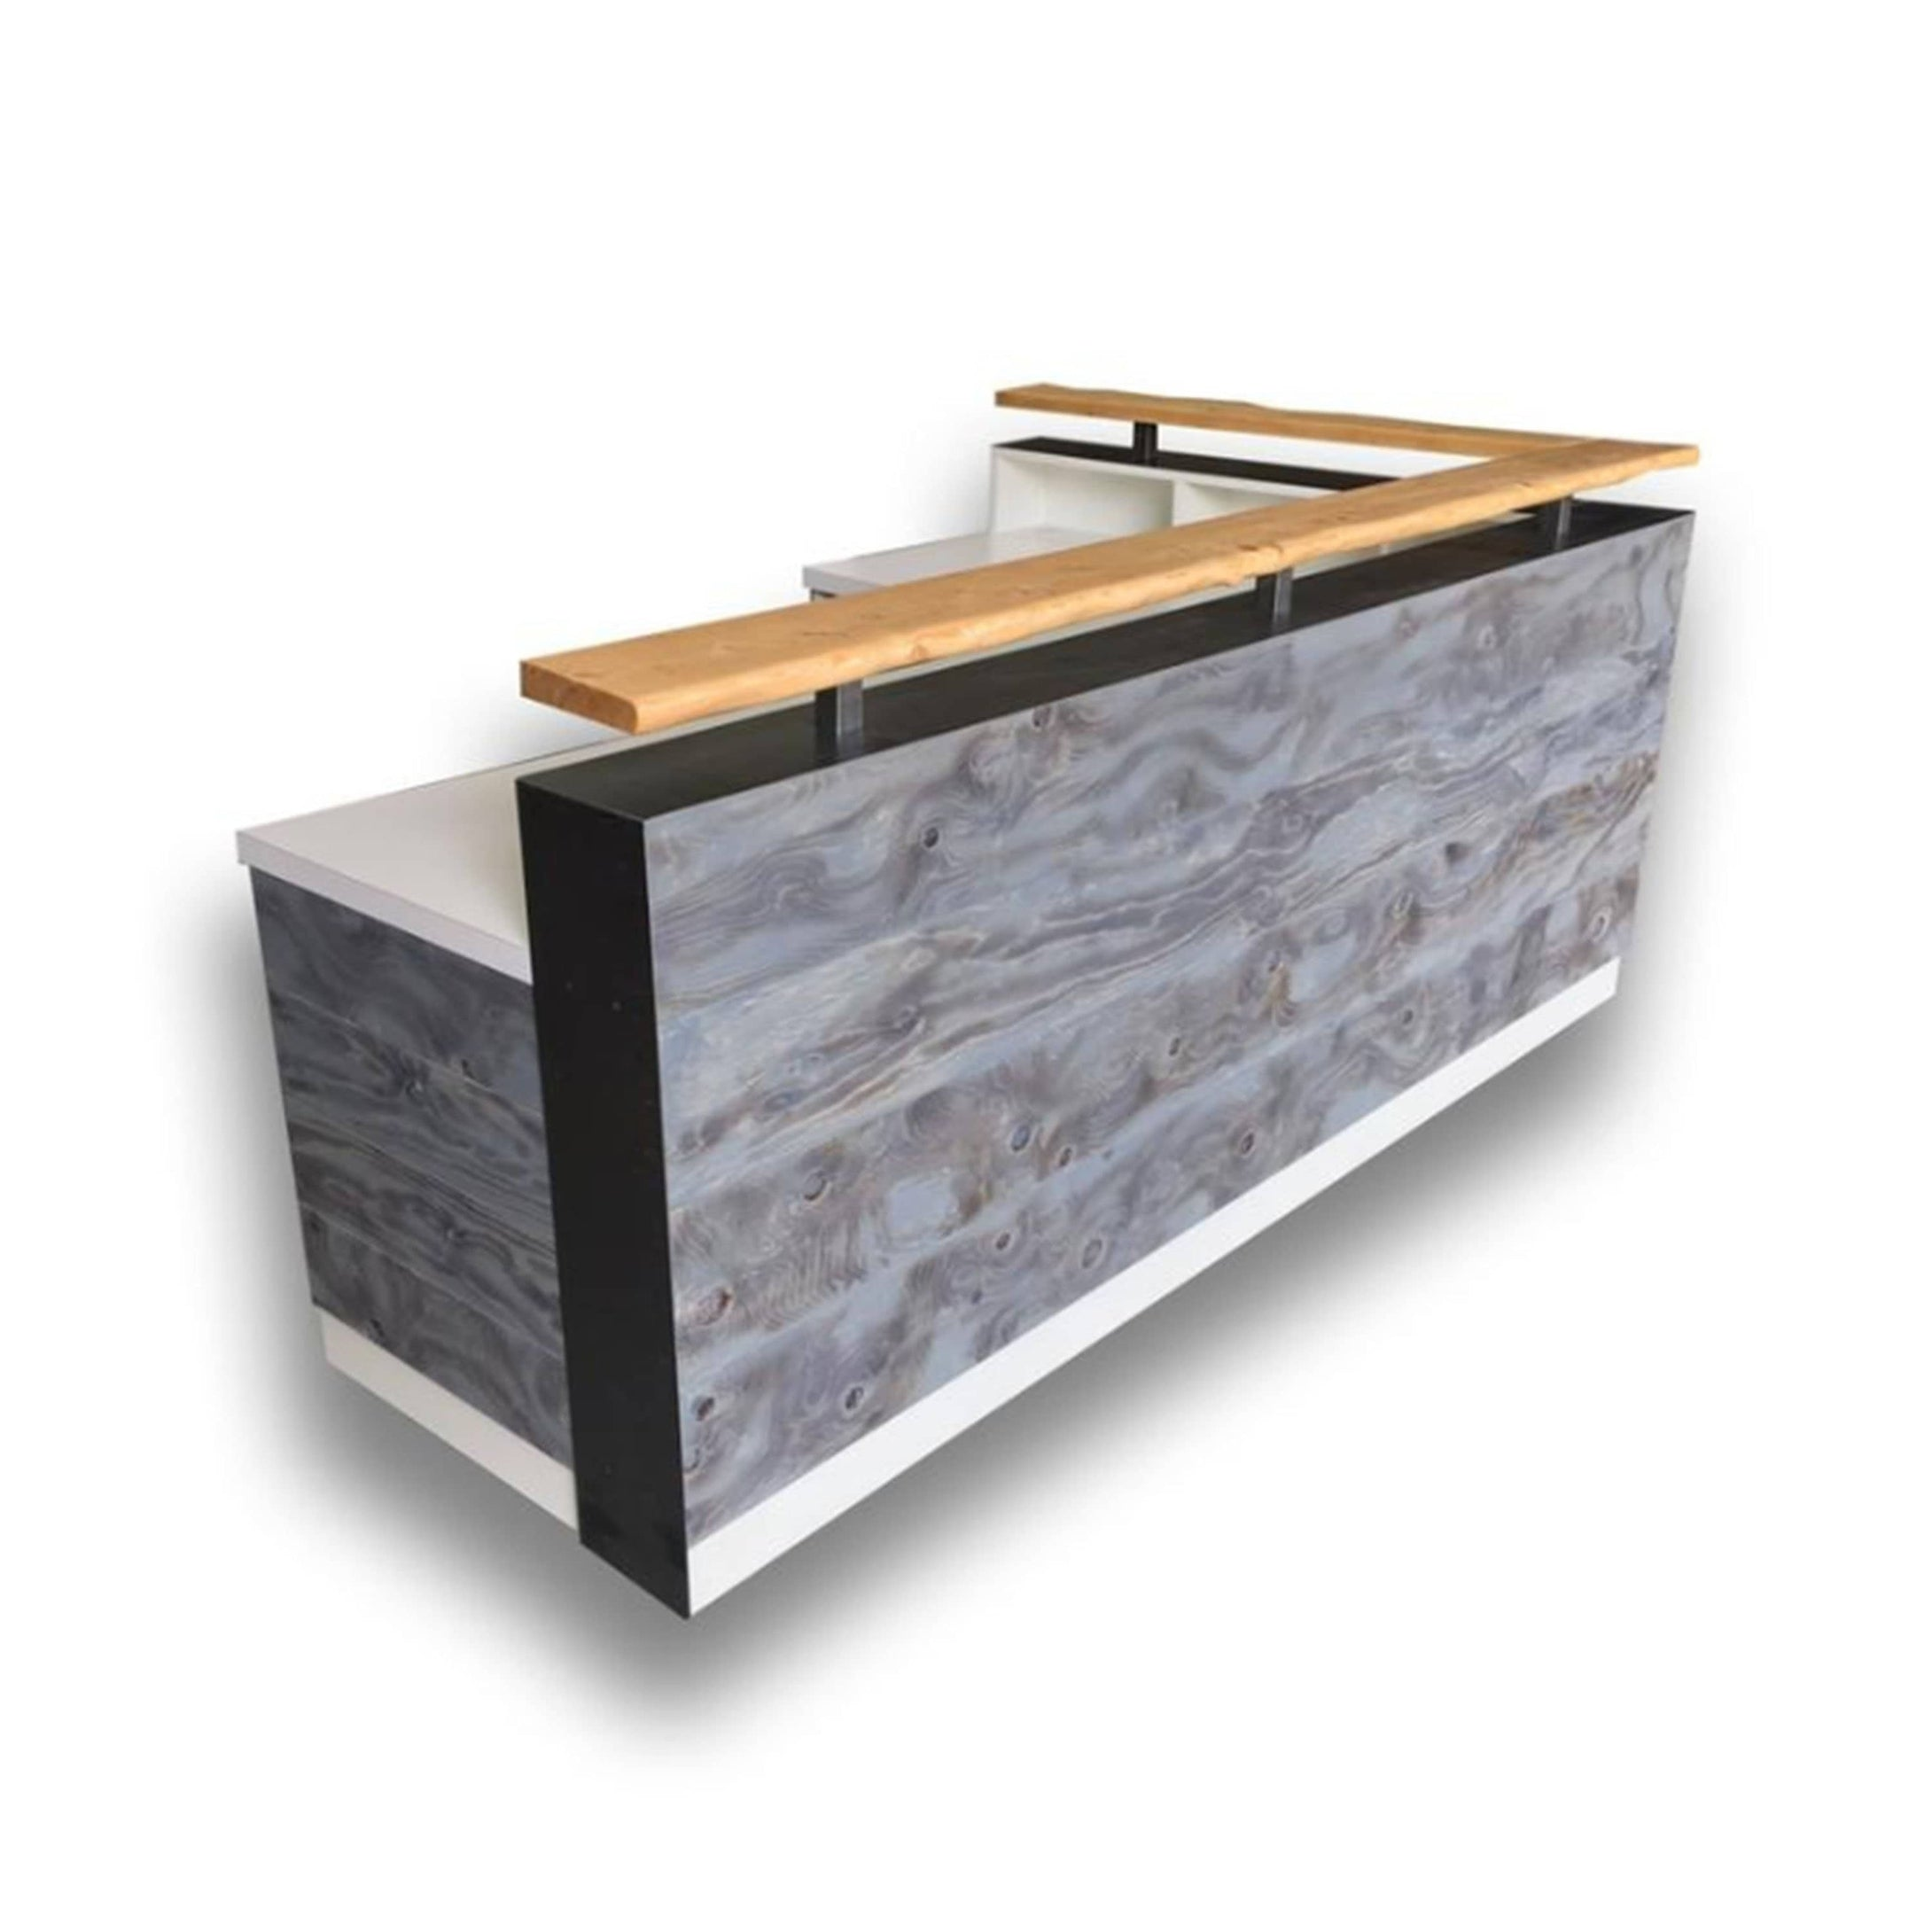 Transitional reception desk with distressed wood and live edge riser